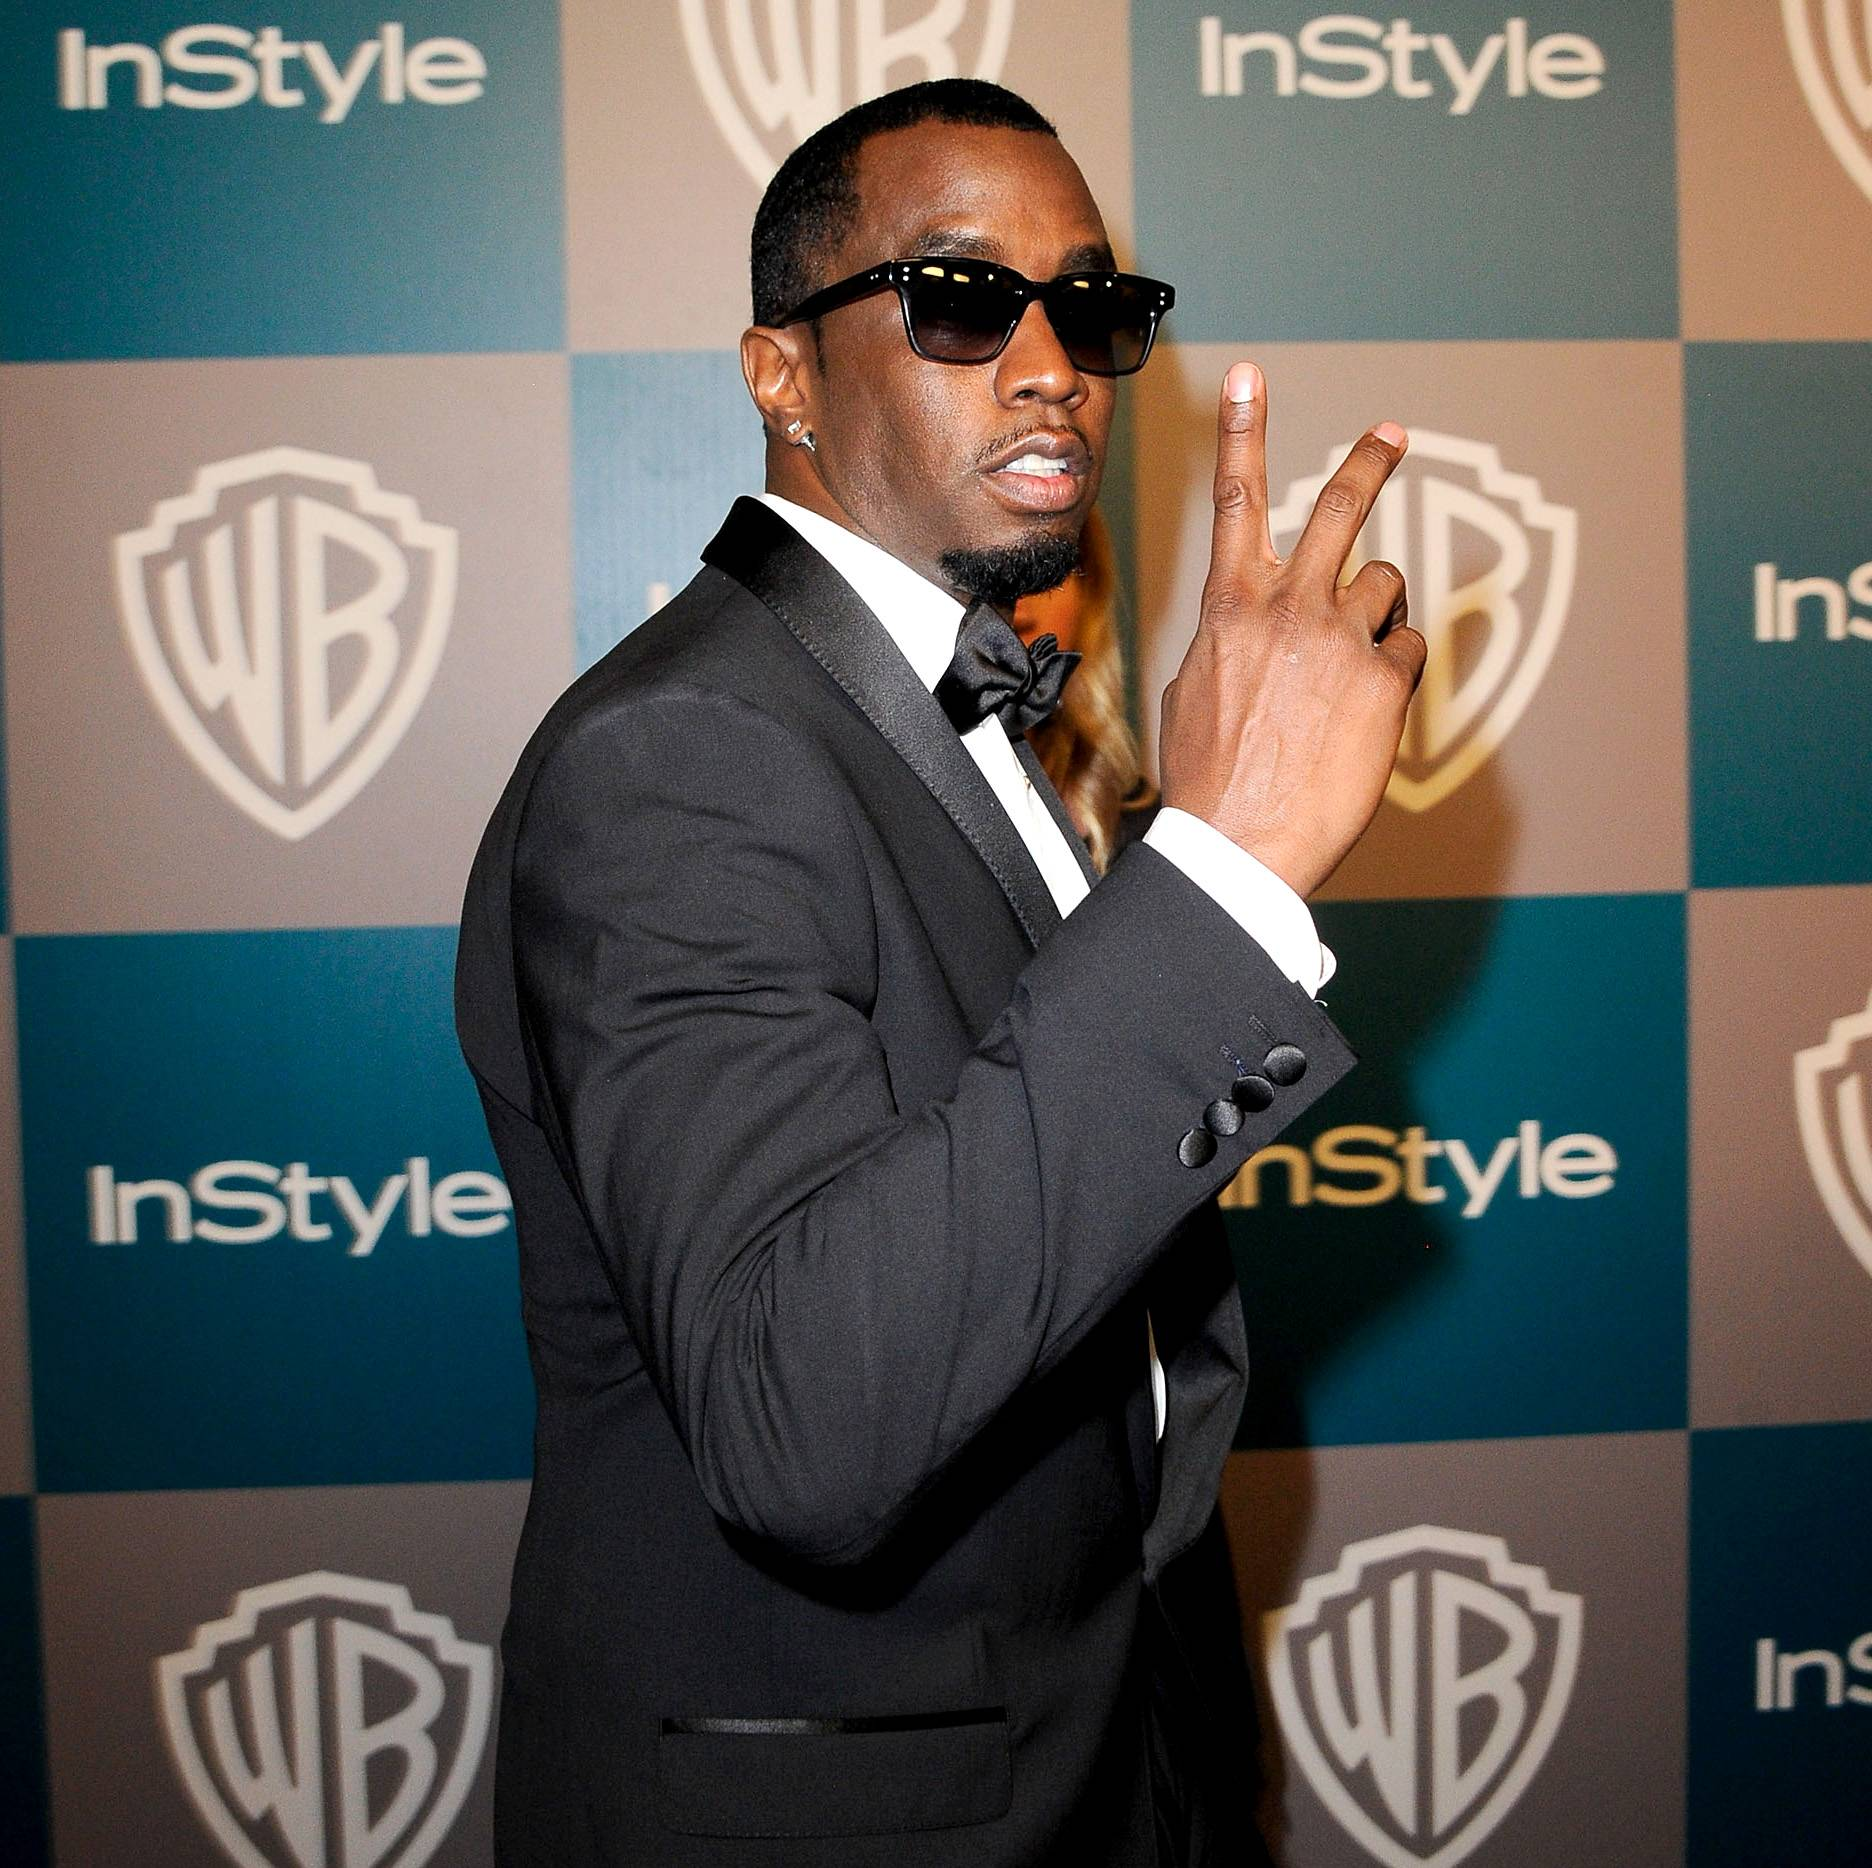 Sean ?P.Diddy? Combs: Bad Boy Worldwide - Sean ?P.Diddy? Combs is the founder and CEO of Bad Boy Worldwide and Sean John Clothing. Combs was born in Harlem and grew up in Mount Vernon, New York.(Photo: Kevork Djansezian/Getty Images)